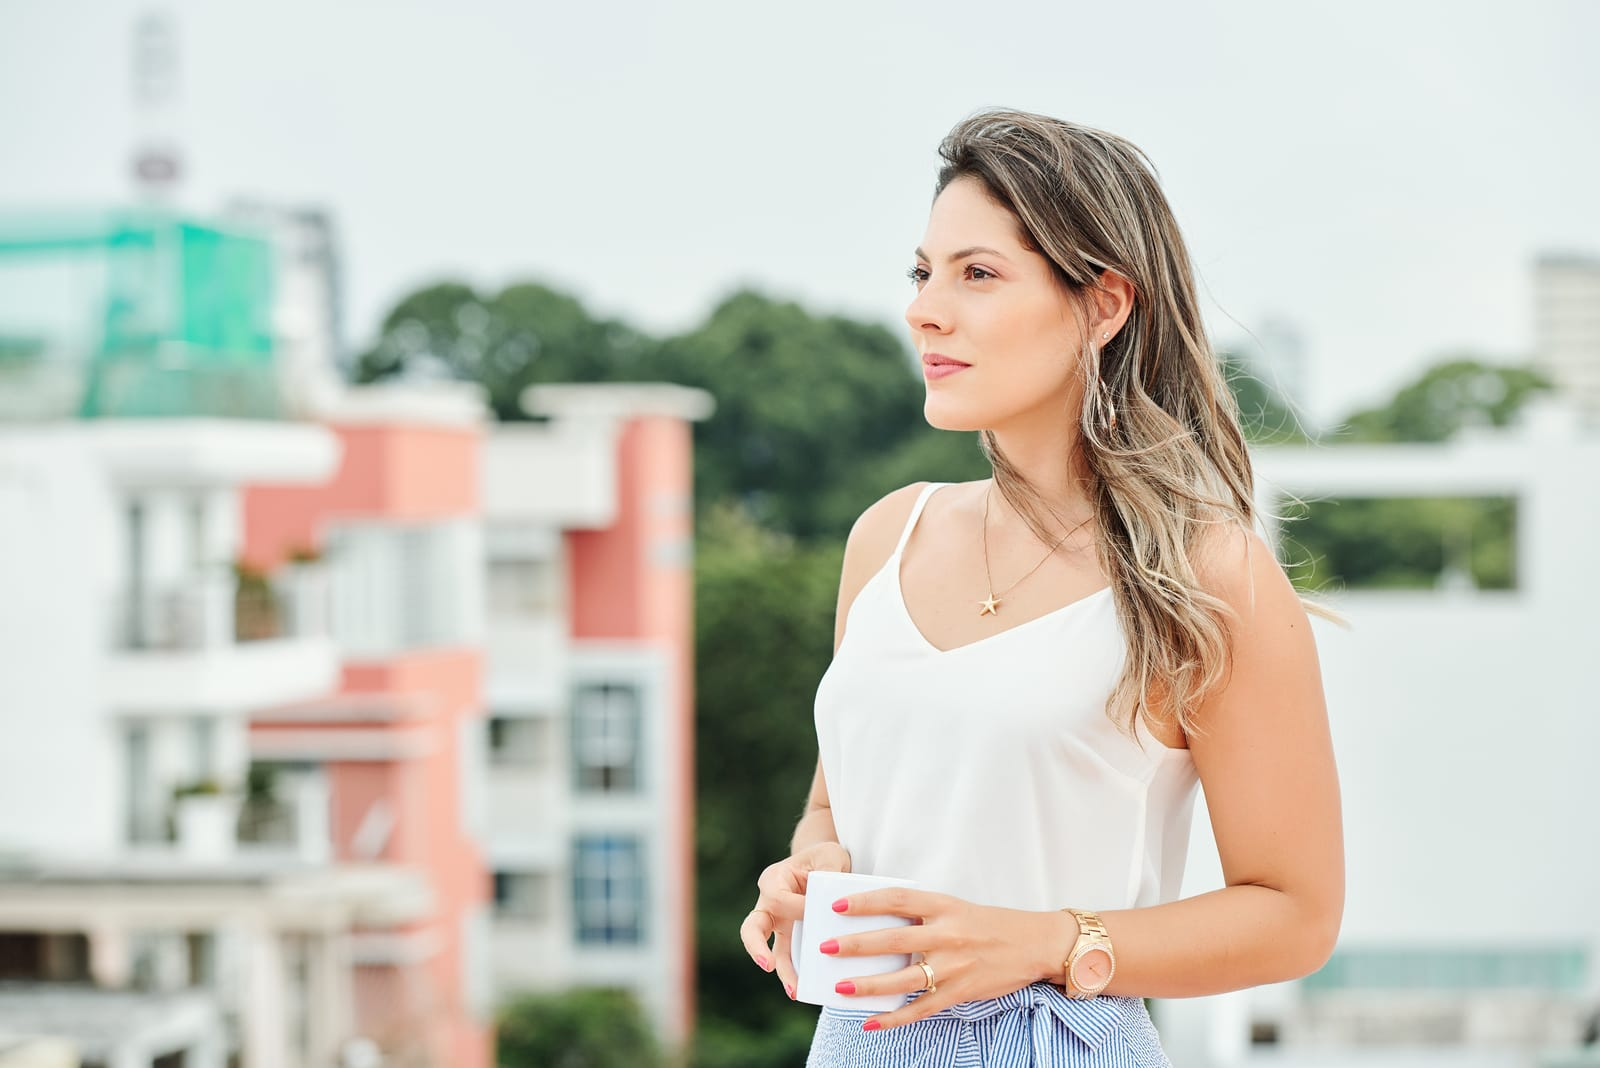 woman standing outdoors and looking away